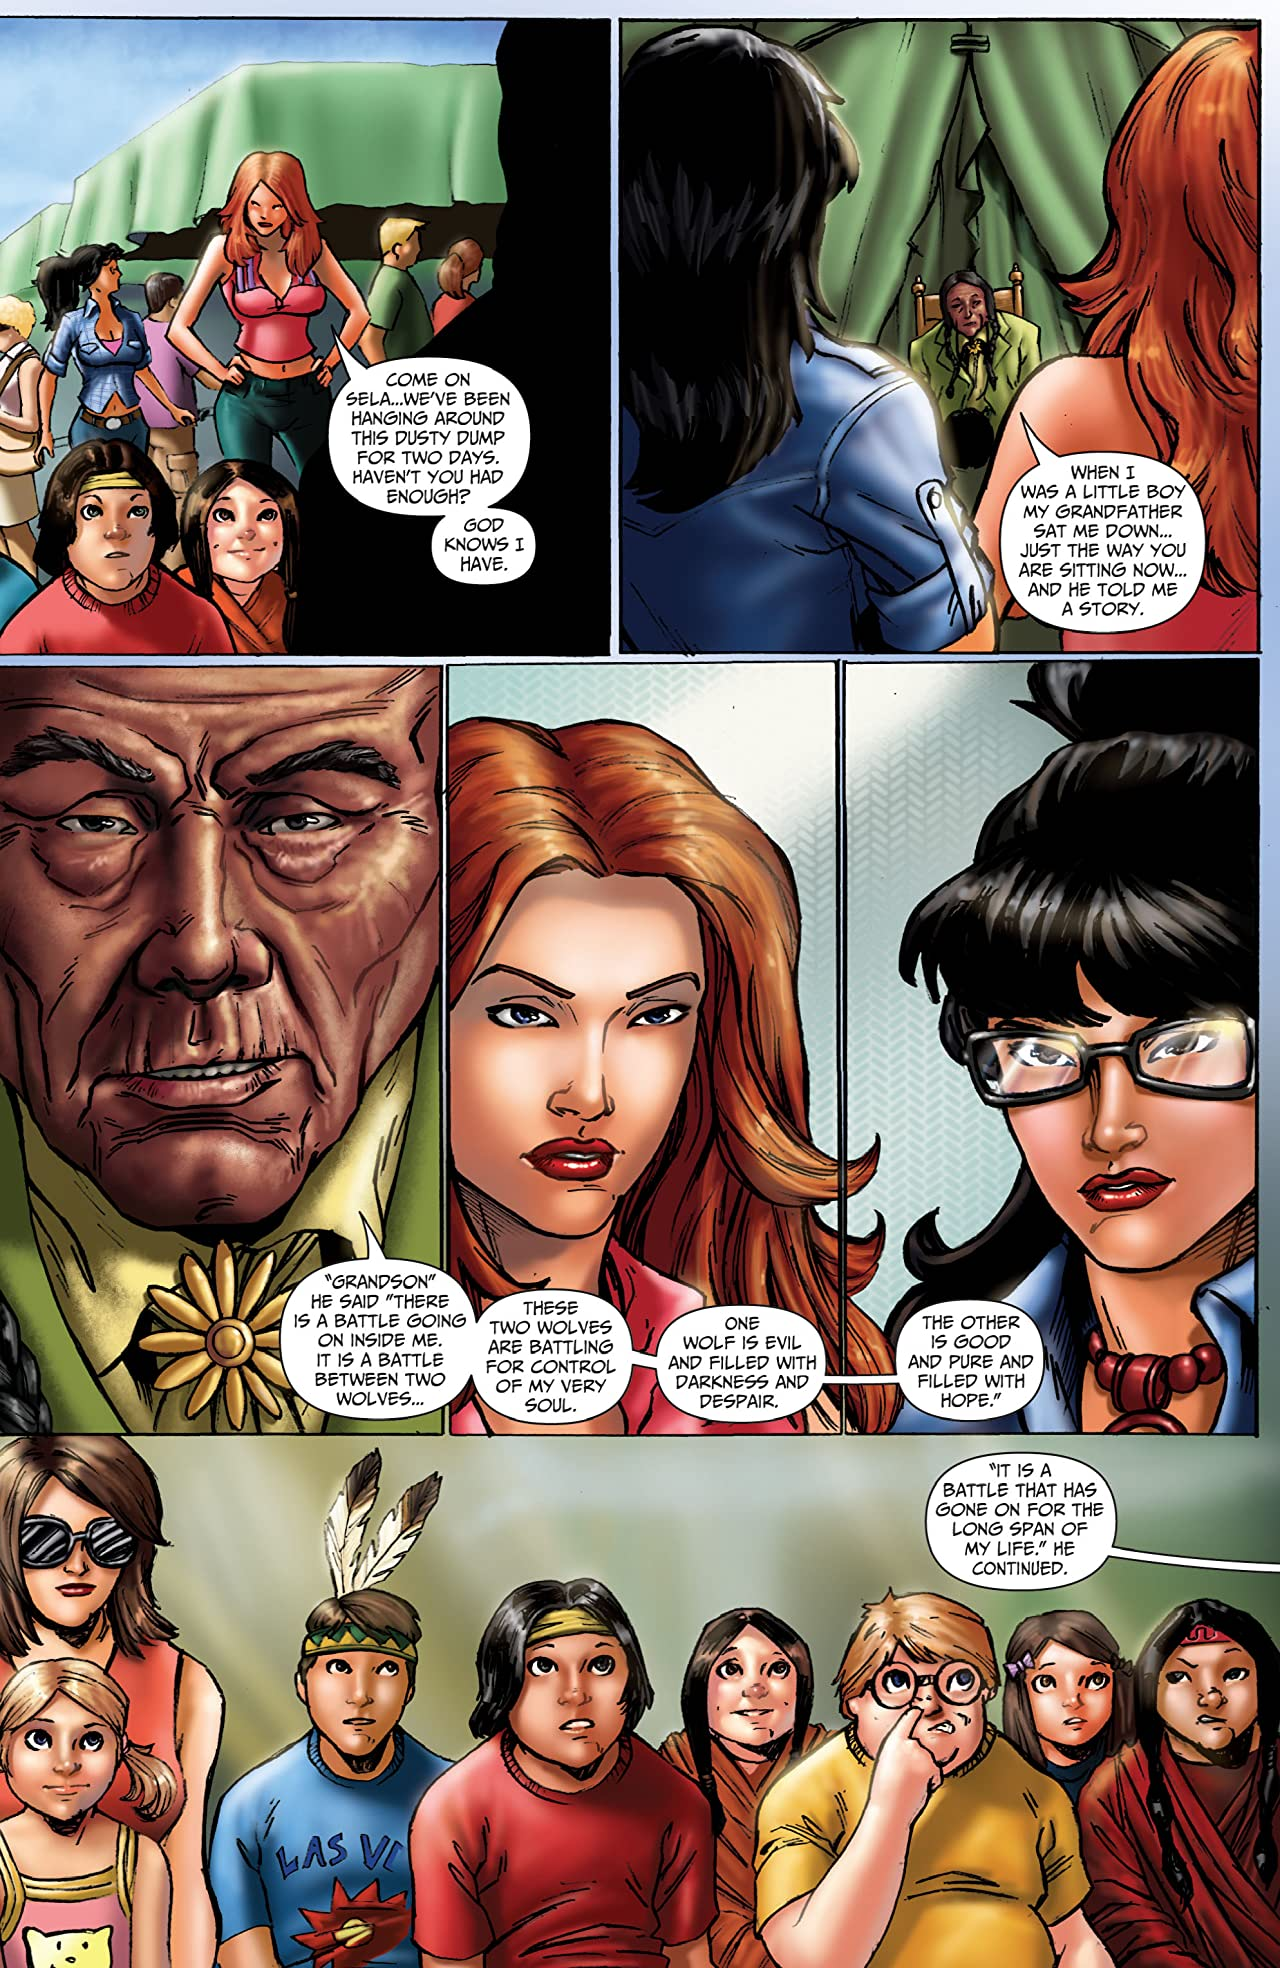 Grimm Fairy Tales #43